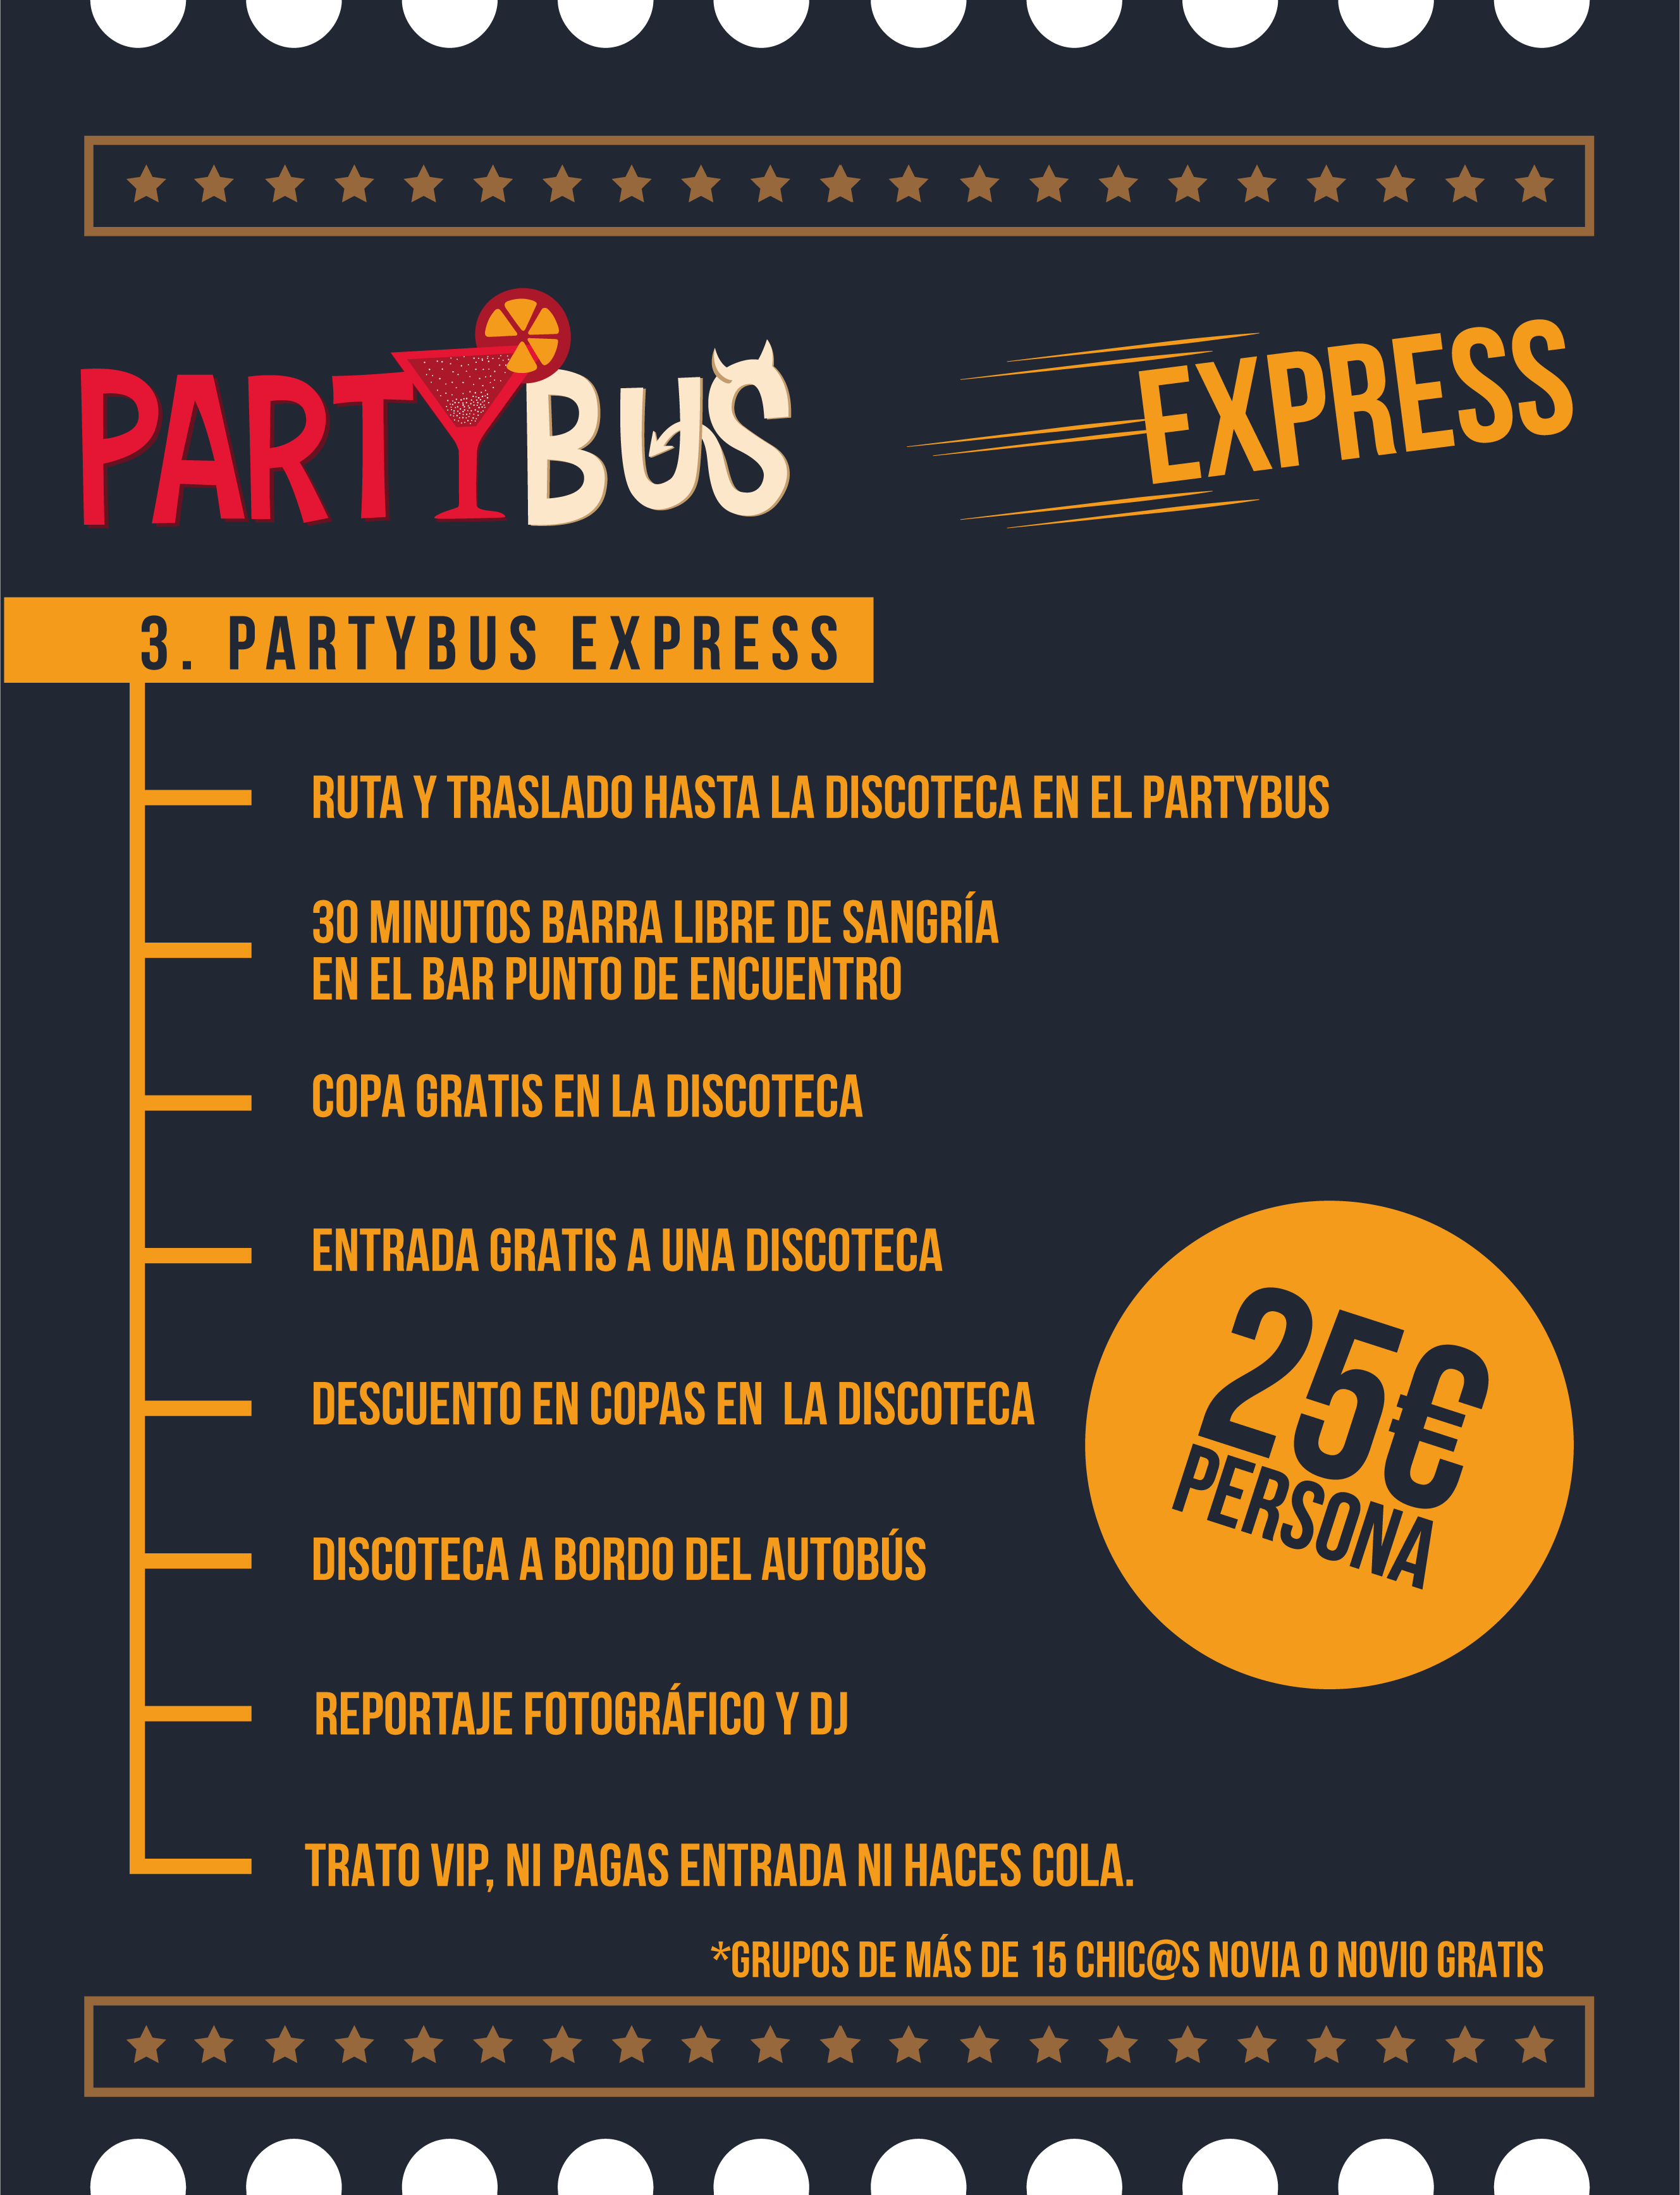 Partybus Expres